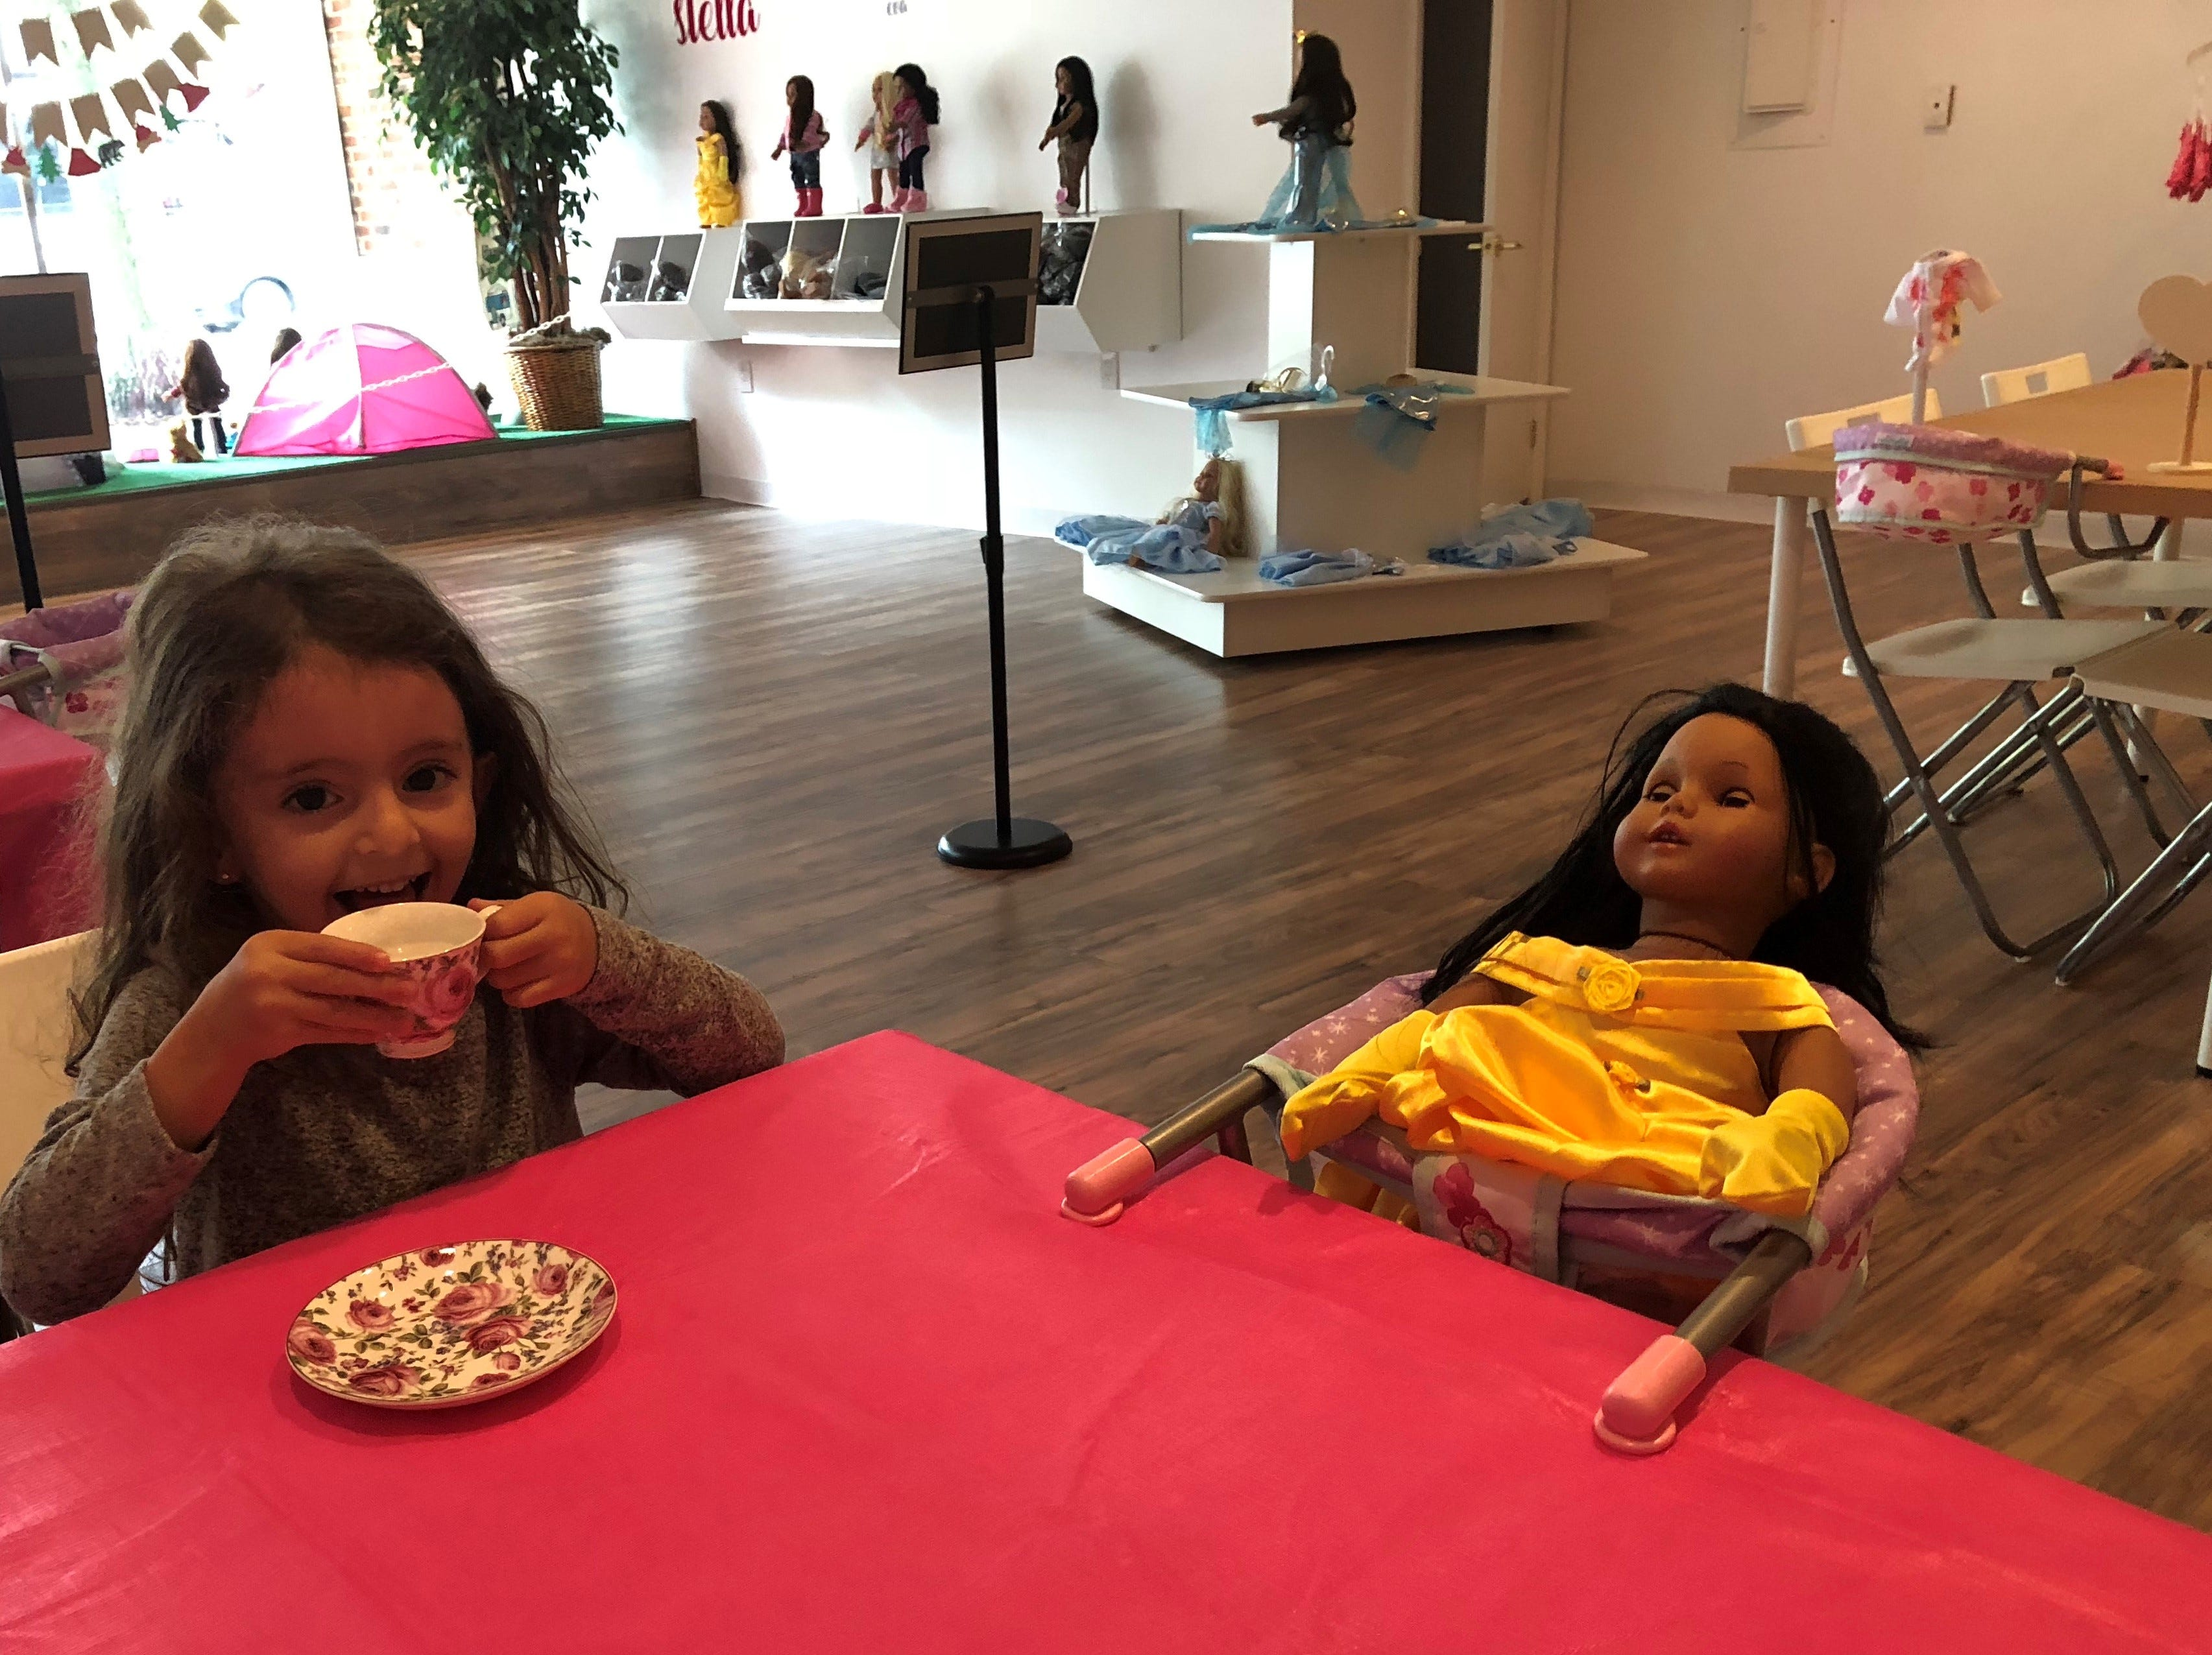 Stella Fiorentino, 4, enjoys tea time with her doll, Belle, at Stella & Toni in Haddonfield.